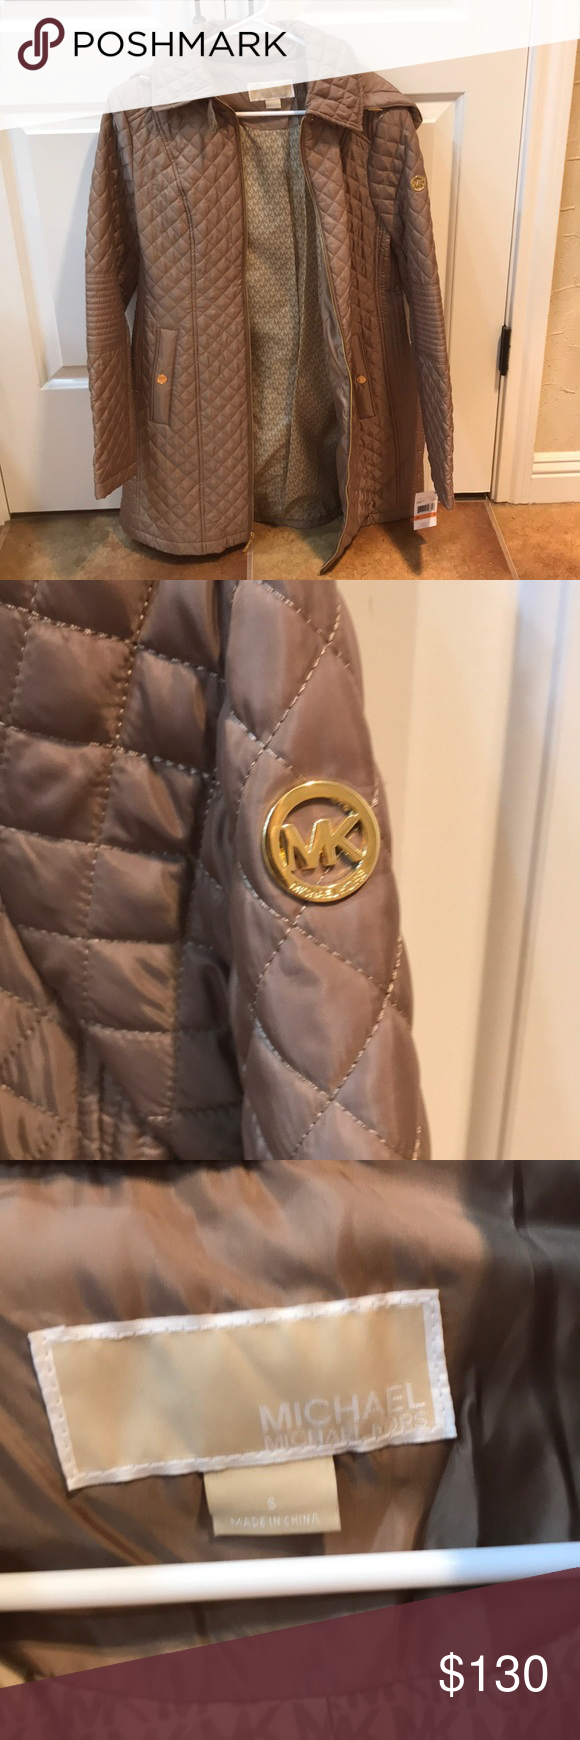 Michael Kors Coat Removable hood Michael Kors Jackets & Coats Puffers #myposhpicks